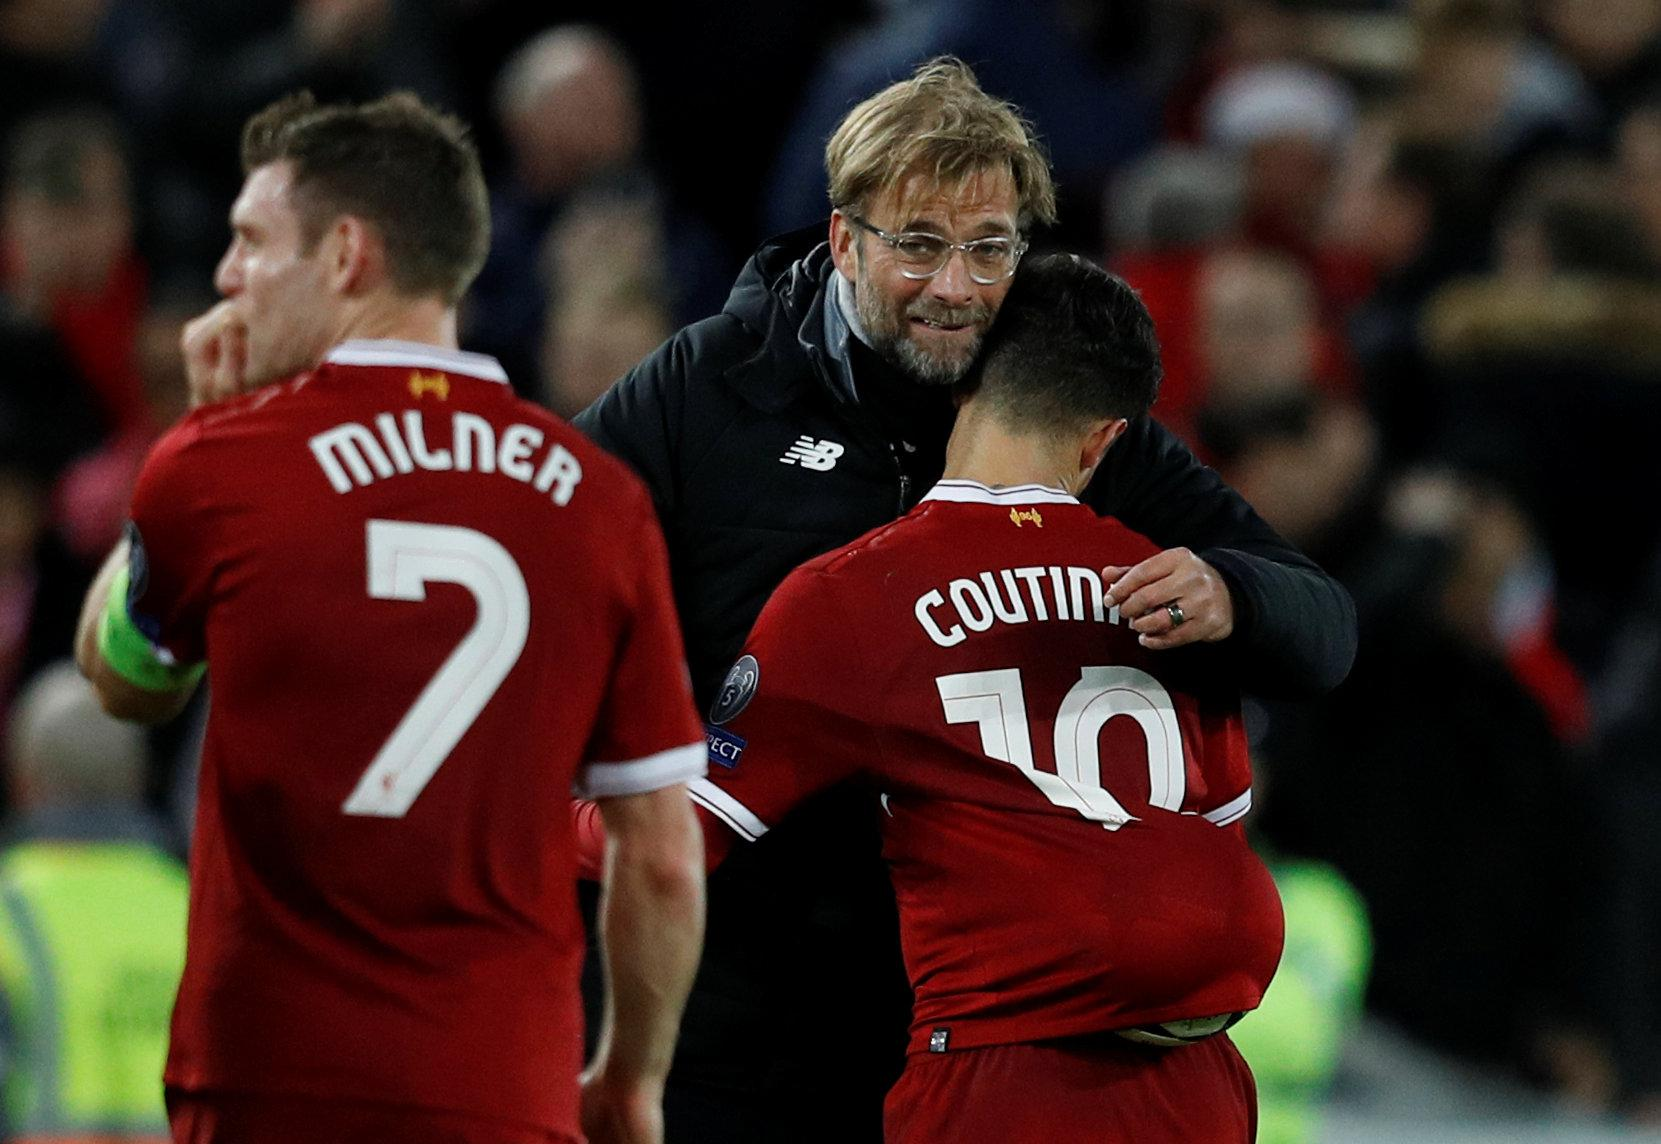 Klopp looks like a guy who gives kick-ass hugs